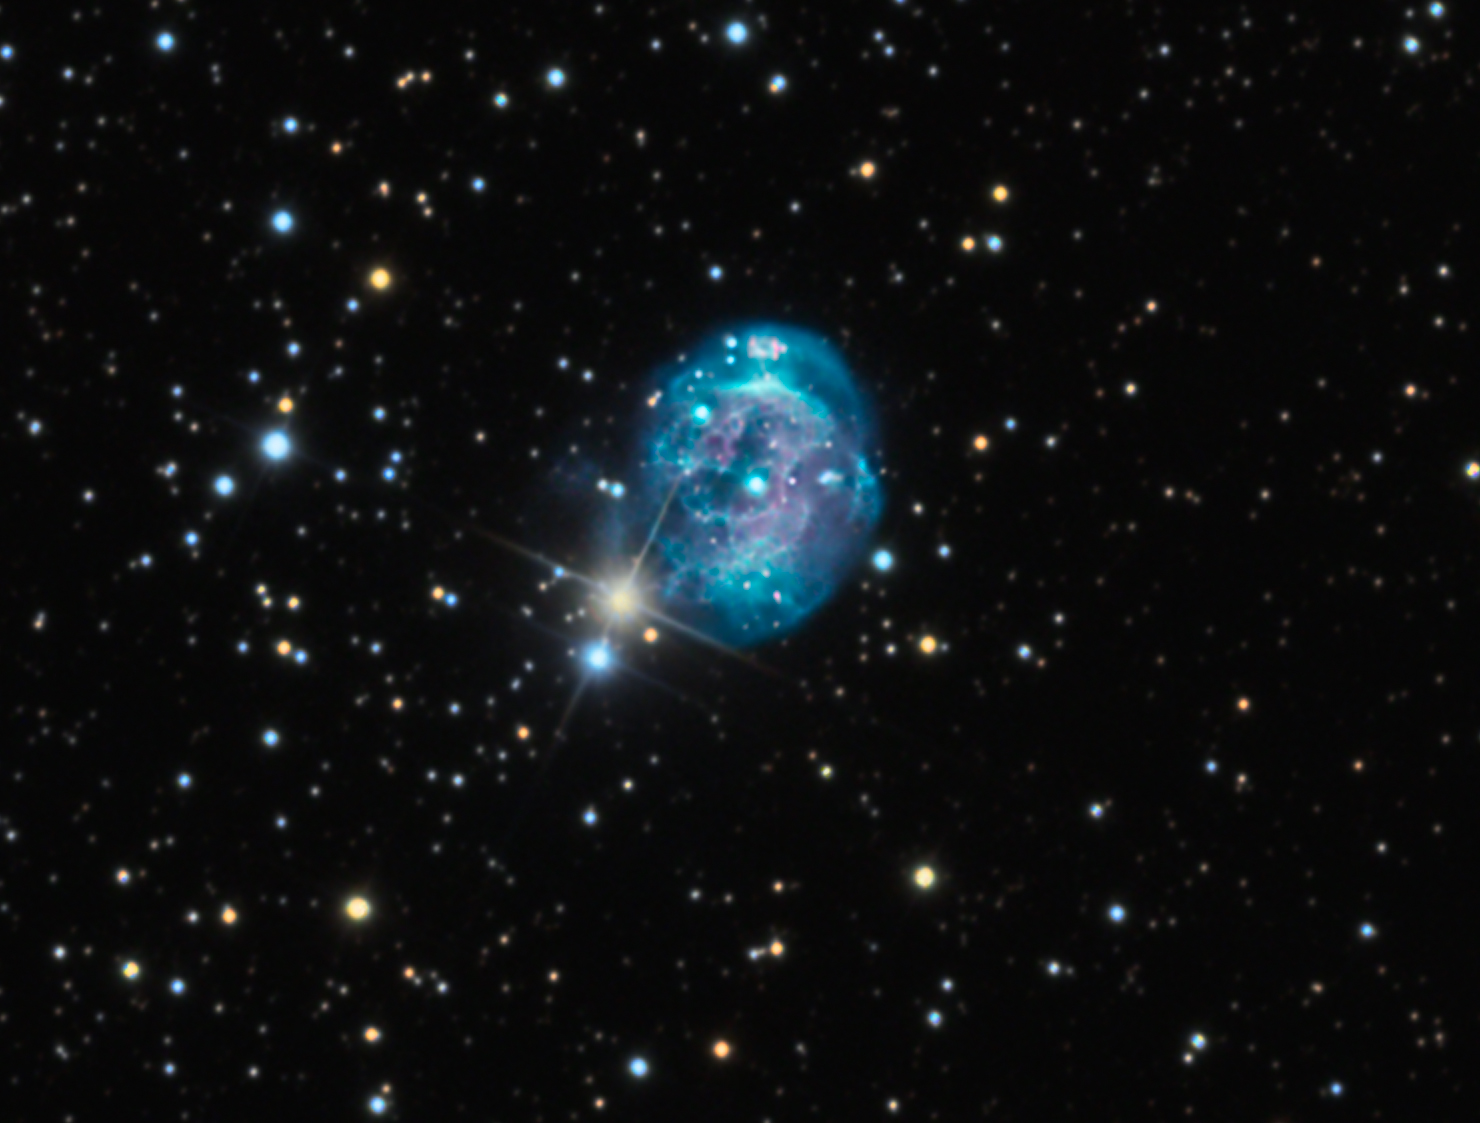 Birth of Cool: Photographers Catch Brilliant Fetus Nebula